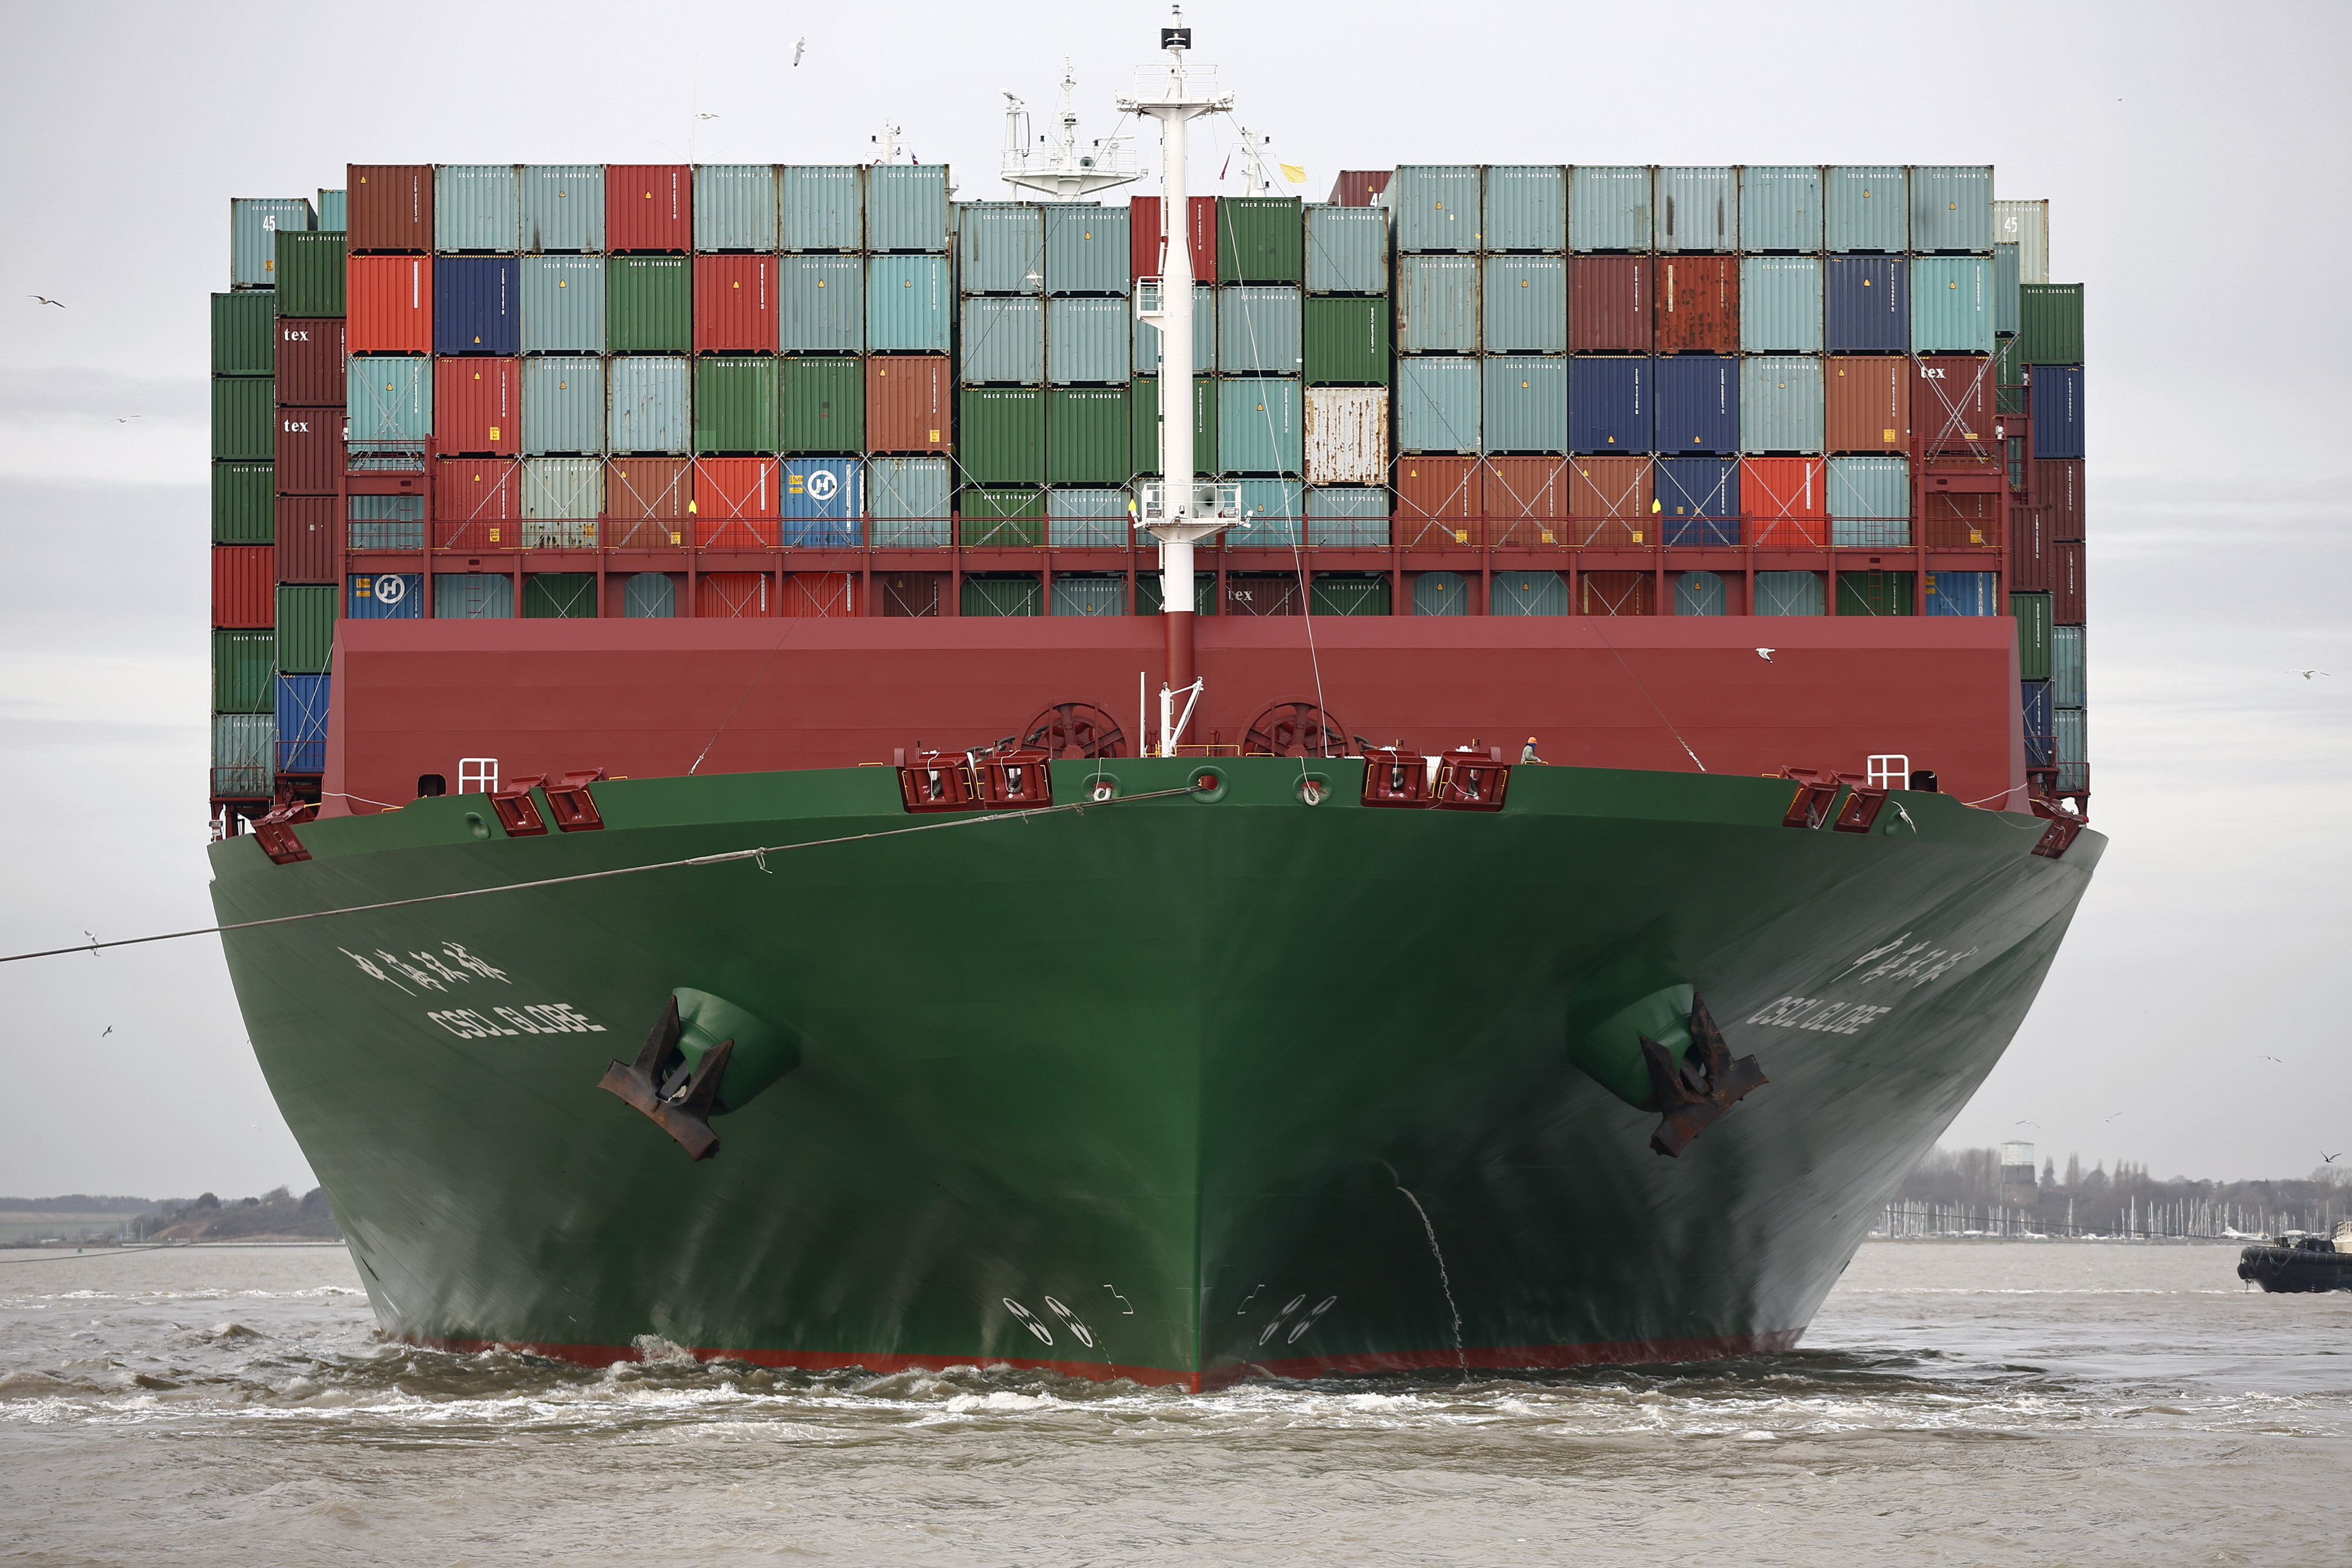 World's Largest Container Ship The CSCL Globe Docks At Felixstowe Port